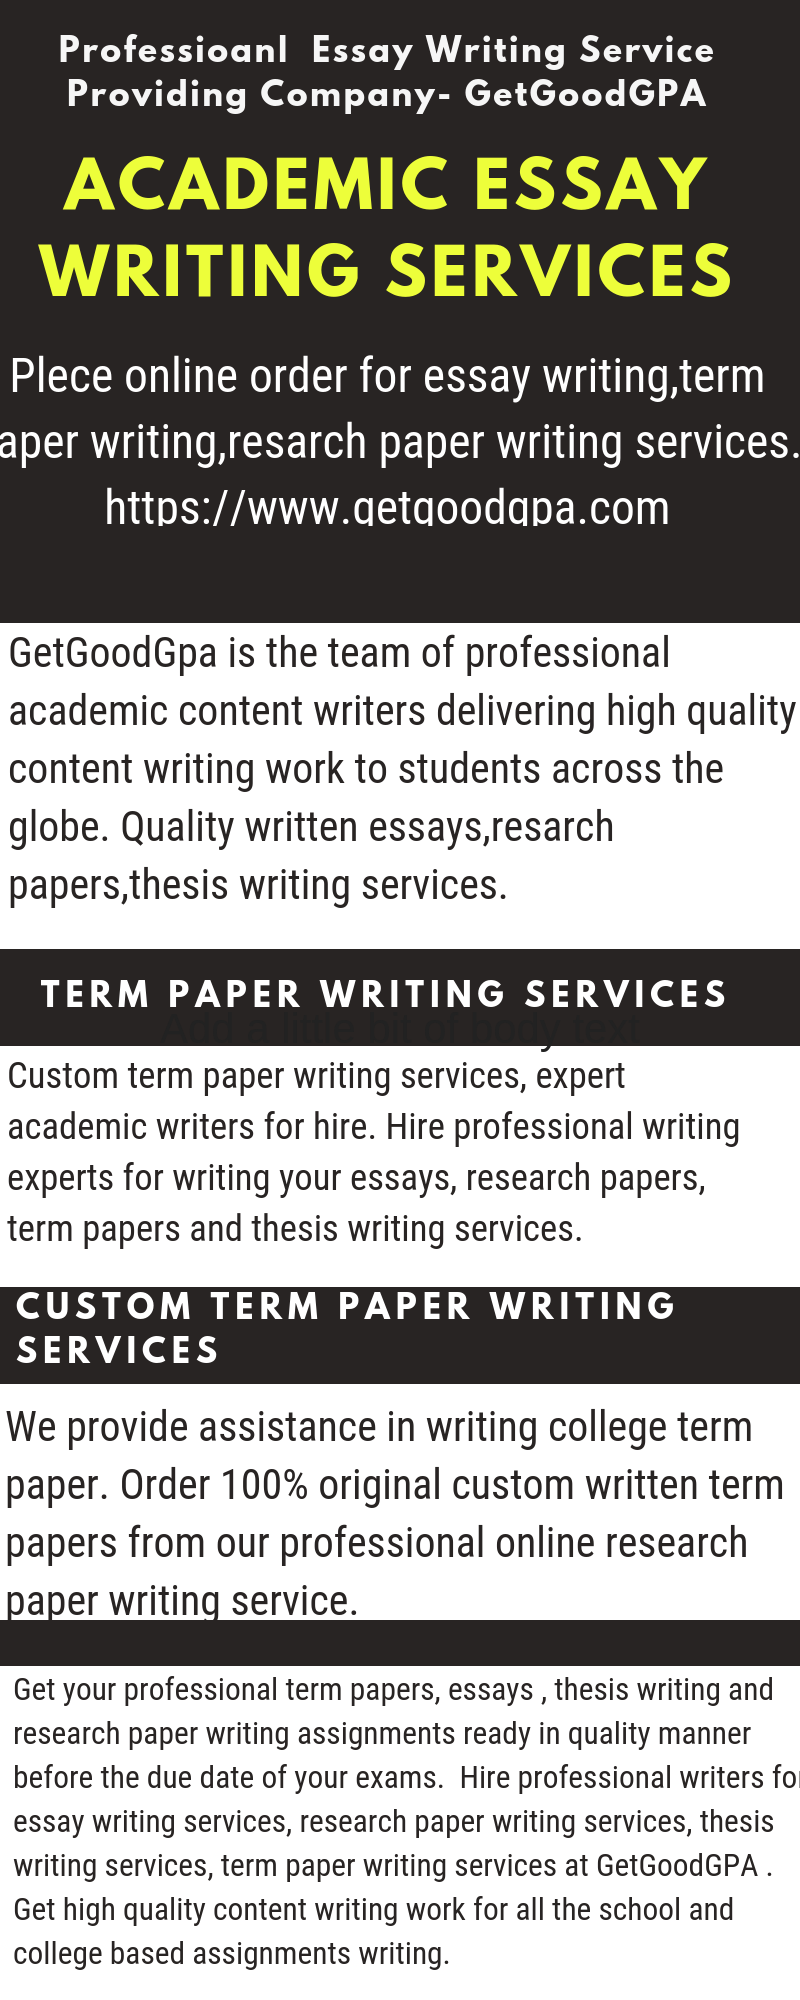 015 Research Paper Custom Writing Dreaded Services Best Academic Service Thesis Full